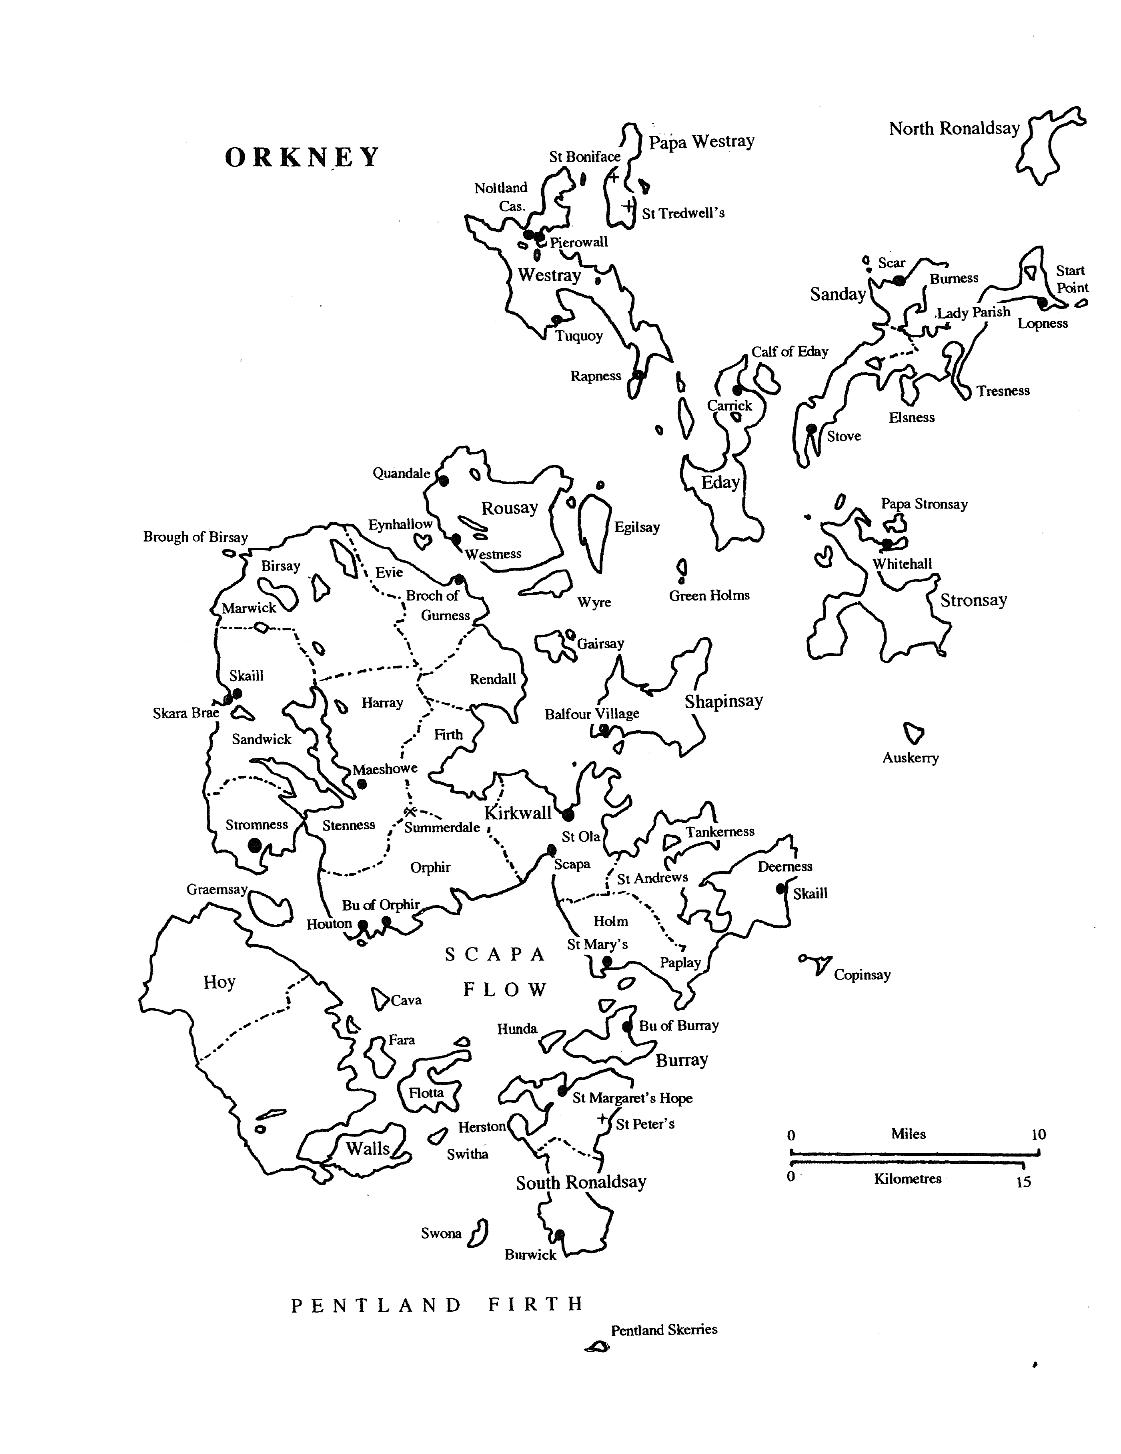 The  Orkney Isles. Eday lies in the centre of the Northern Isles. Between Westray and Stronsay and north of Shapinsay. The Ferry to many island including Eday leaves from Kirkwall, the main transport hub.